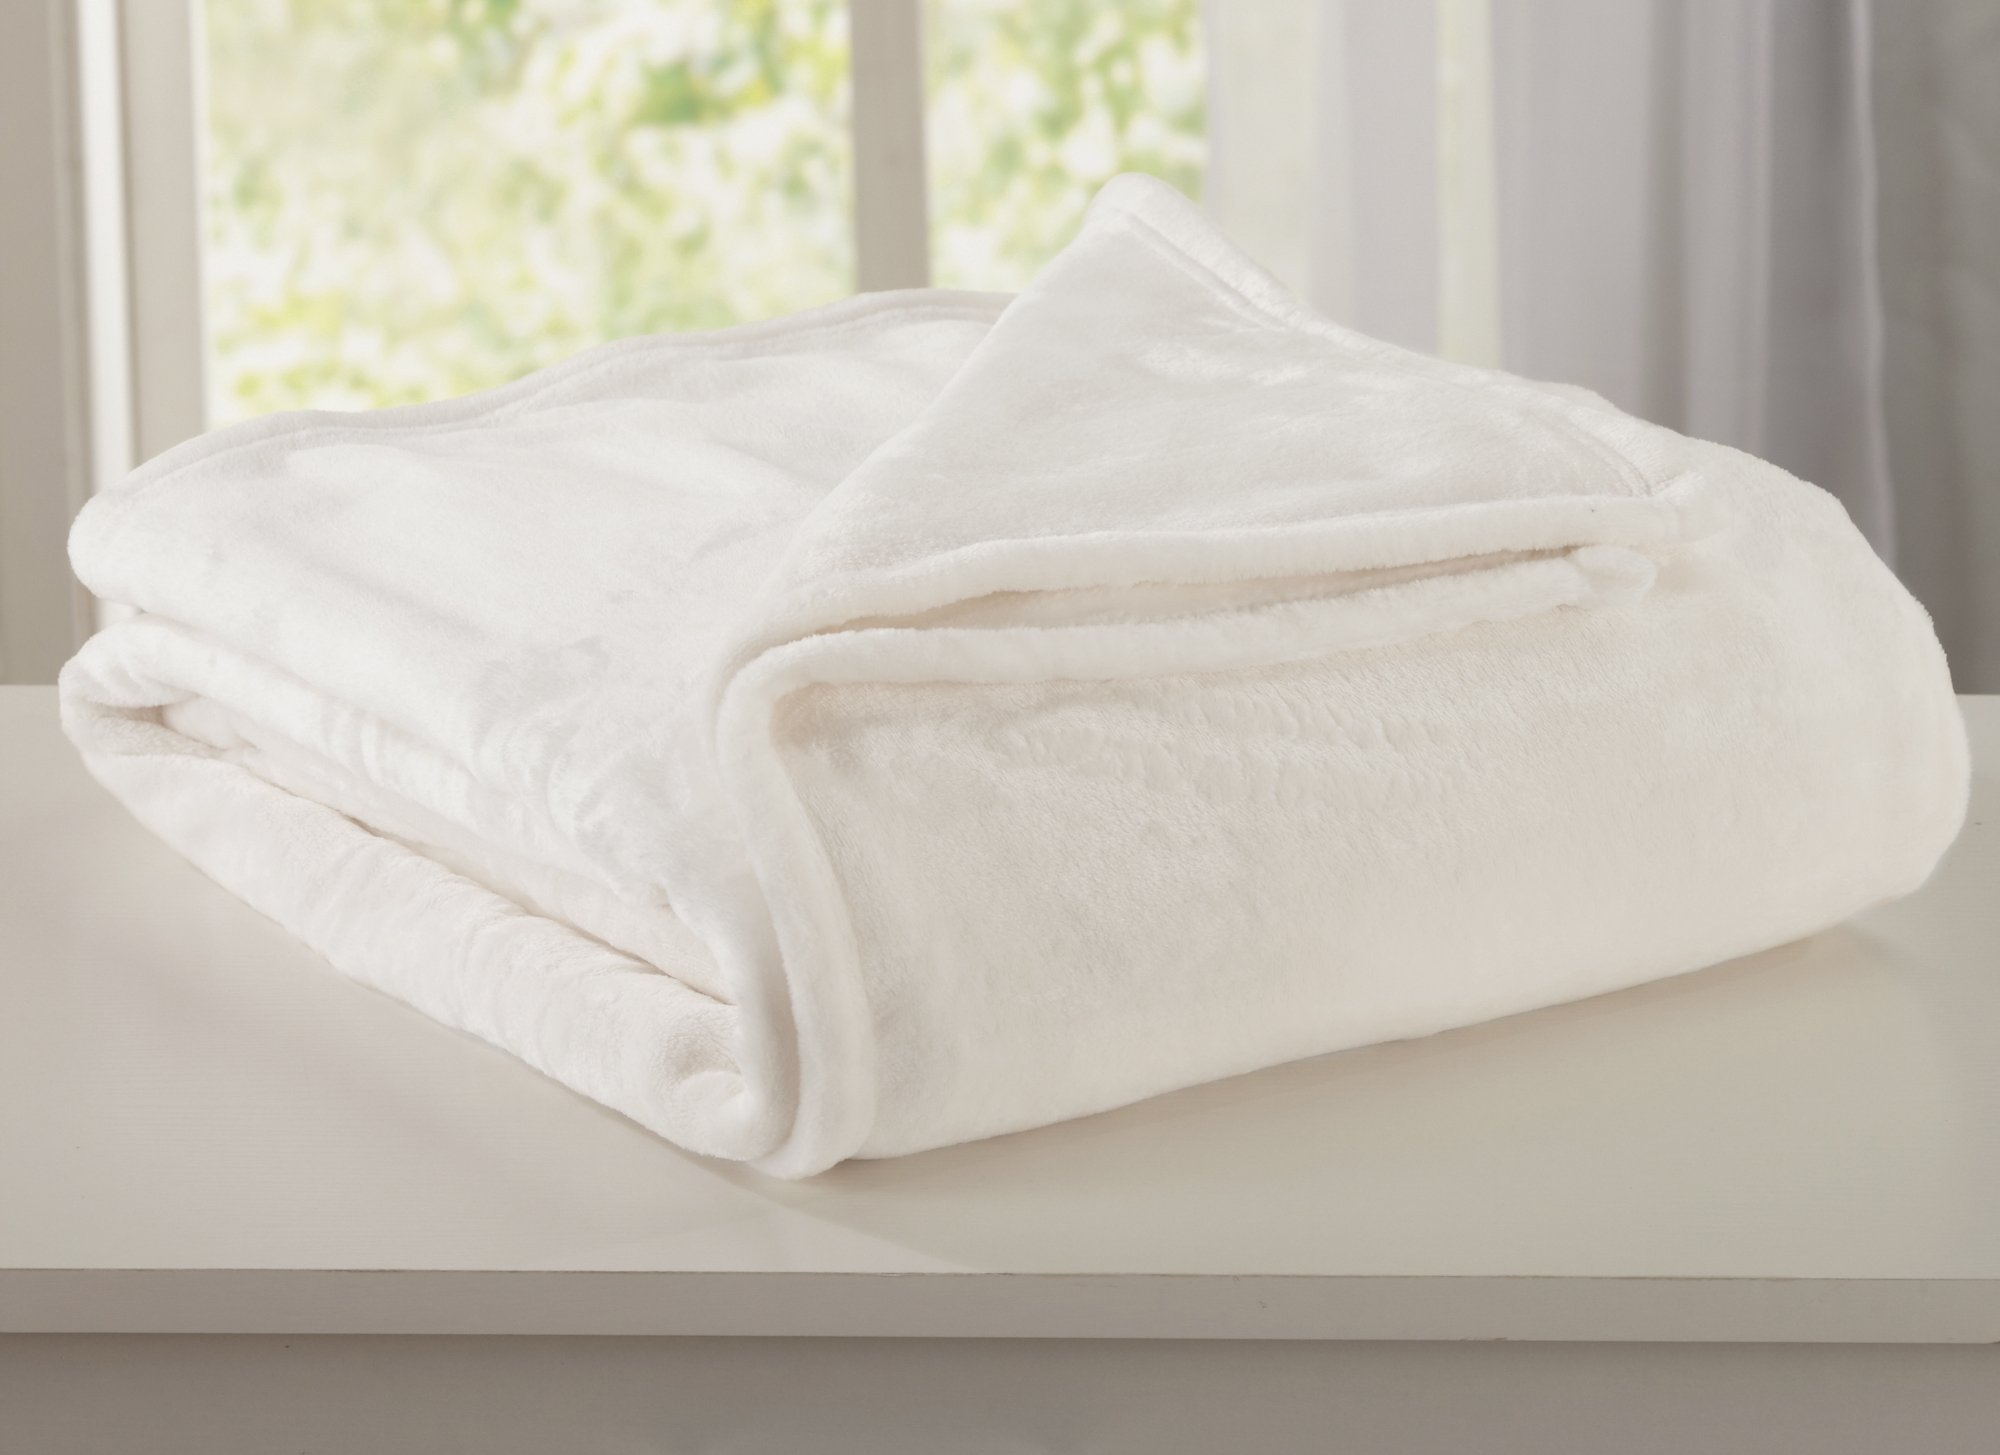 Home Fashion Designs Marlo Collection Ultra Velvet Plush All-Season Super Soft Luxury Bed Blanket. Lightweight and Warm for Ultimate Comfort. By Brand. (Full/Queen, Whisper White)